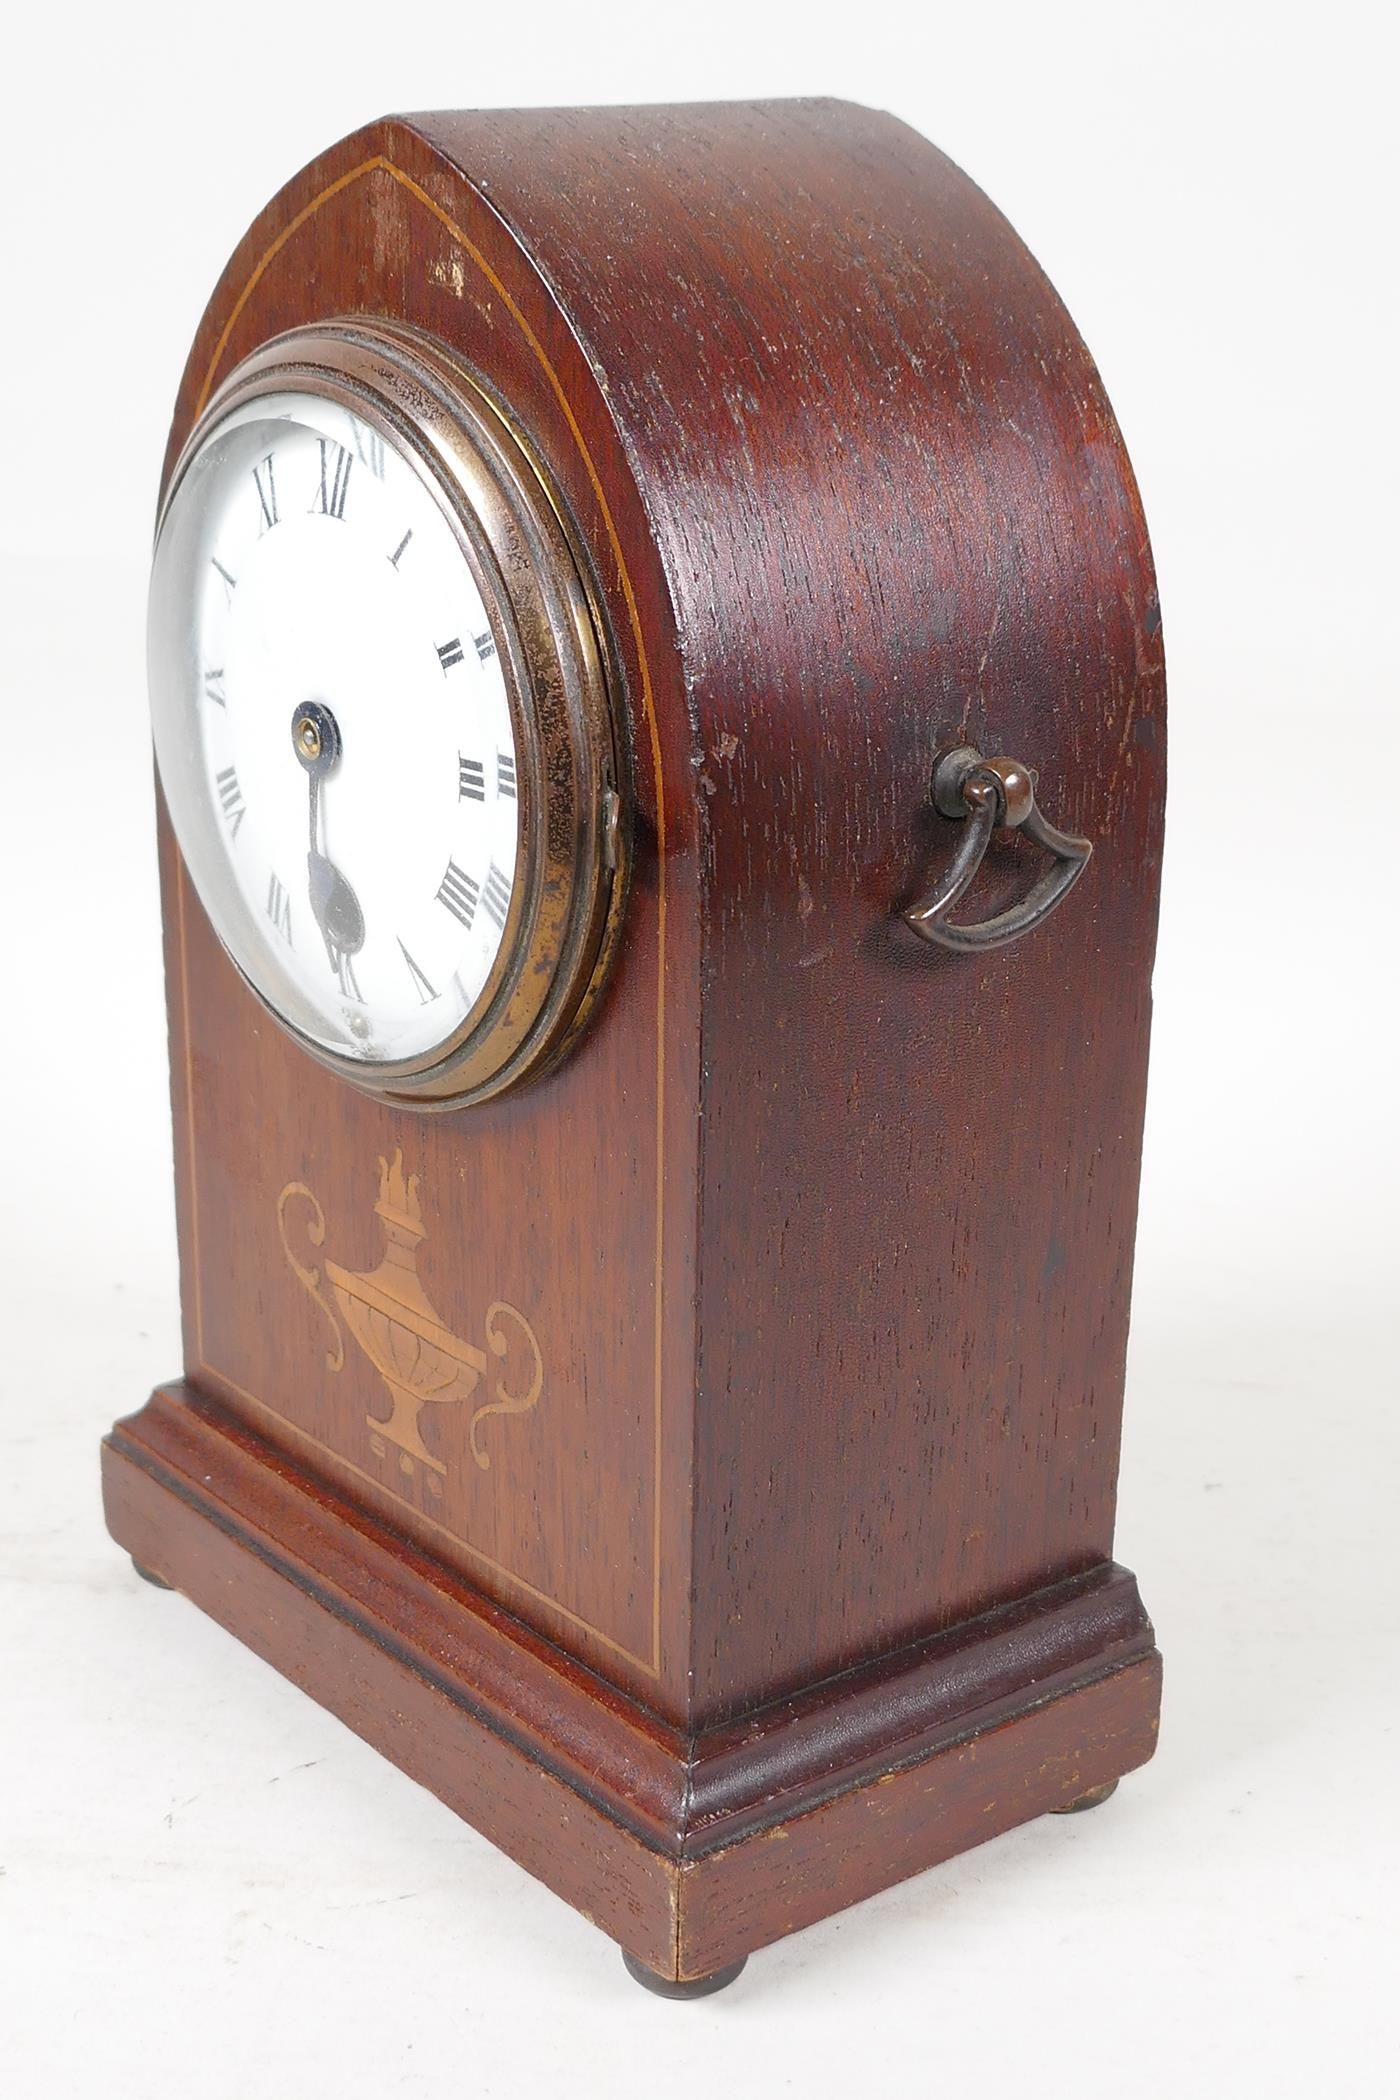 """An inlaid mahogany cased lancet mantel clock with enamelled dial and Roman numerals, 8"""" high - Image 2 of 3"""